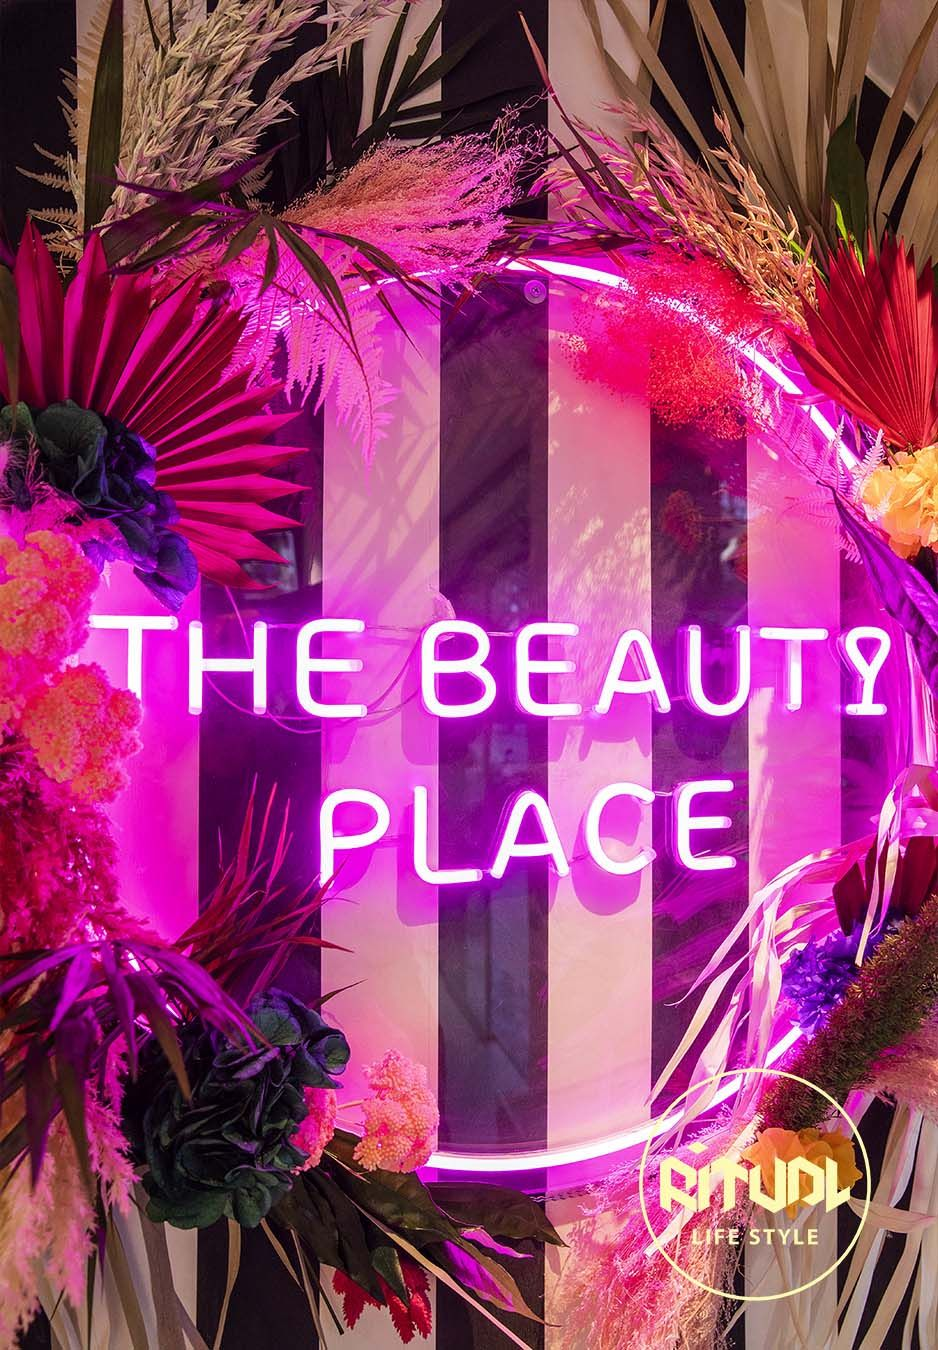 The Beauty Place